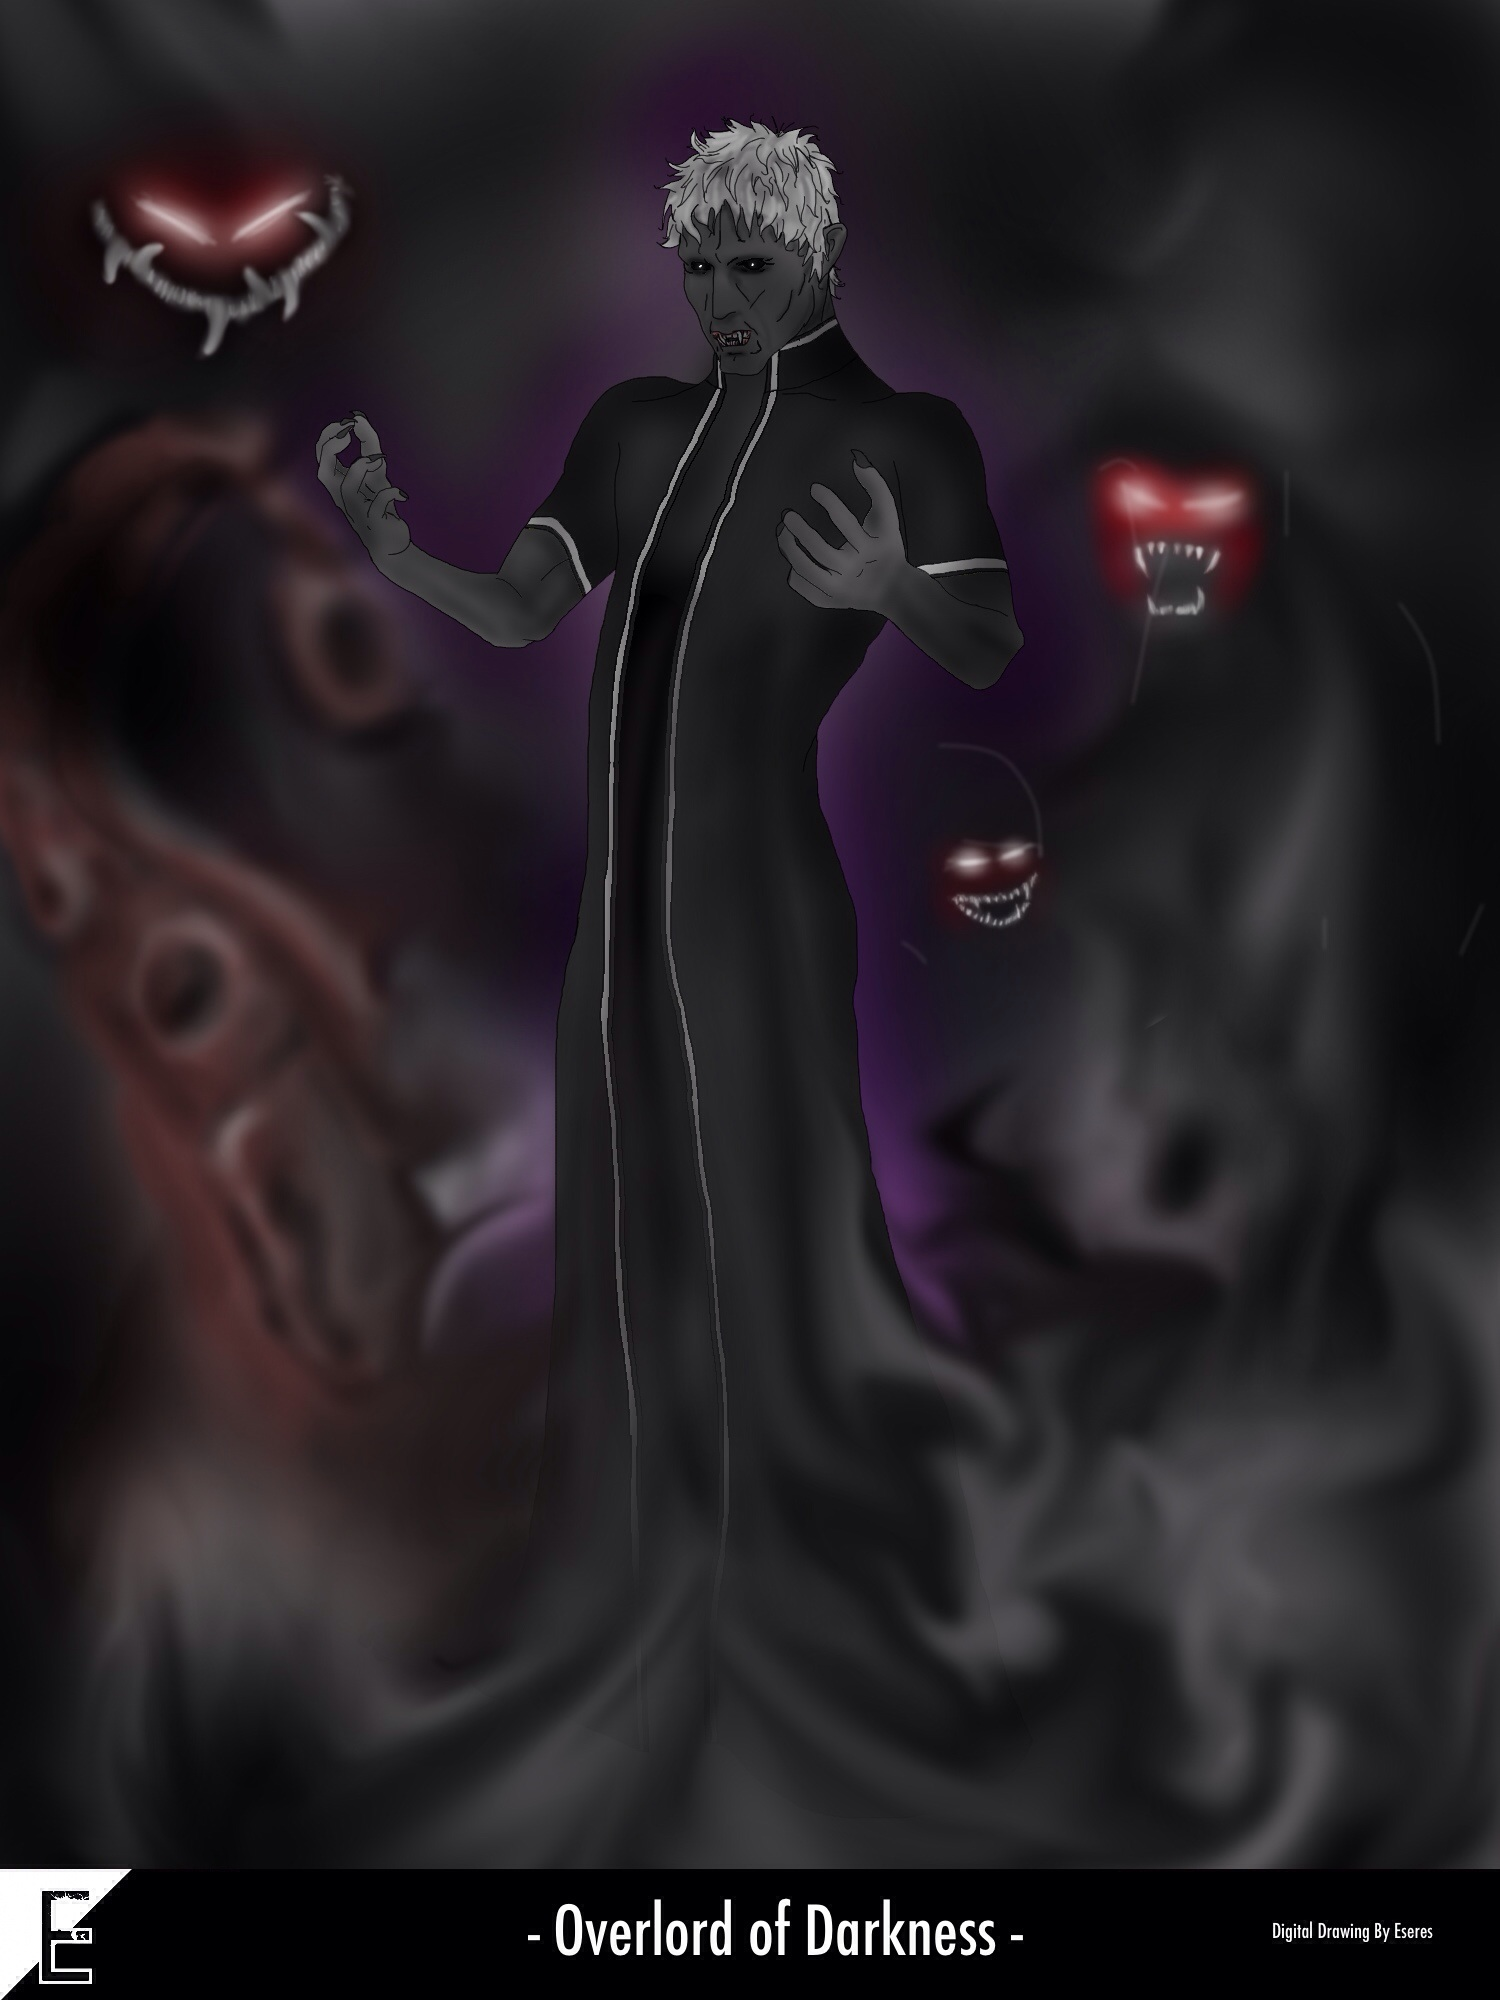 Overlord of Darkness